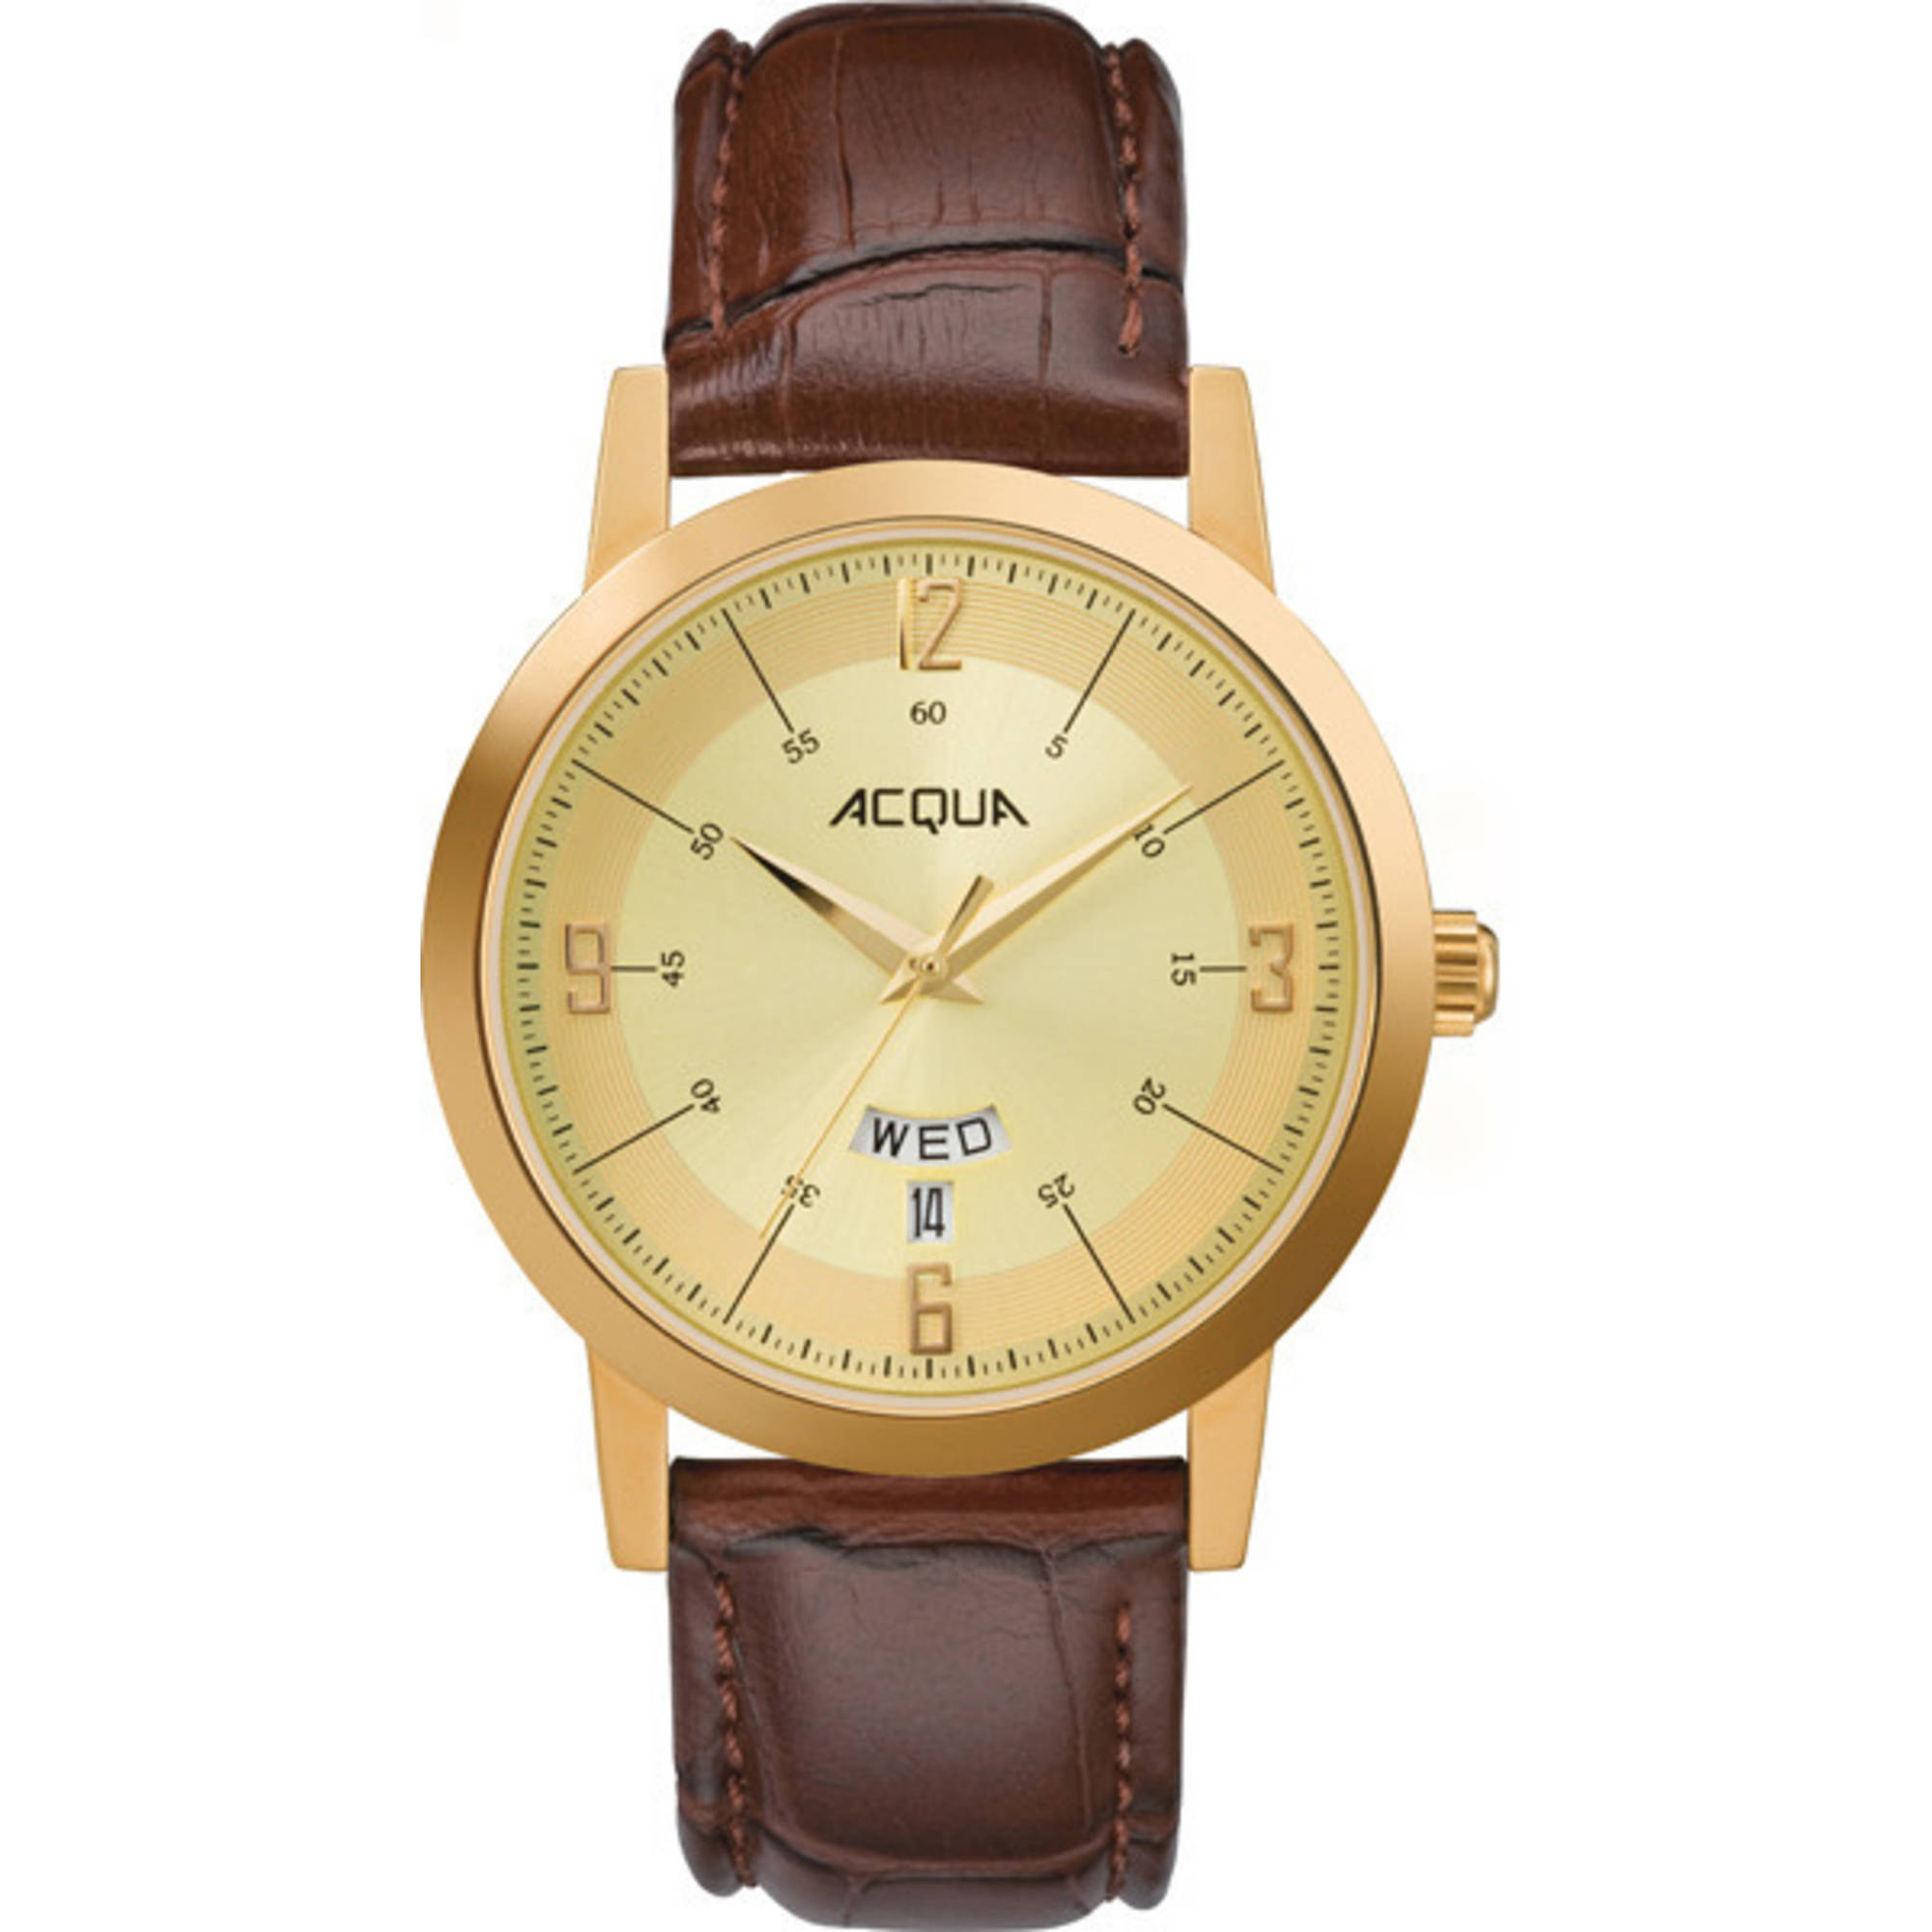 Image of Acqua by Timex Men's Gold-Tone Watch, Brown Leather Strap